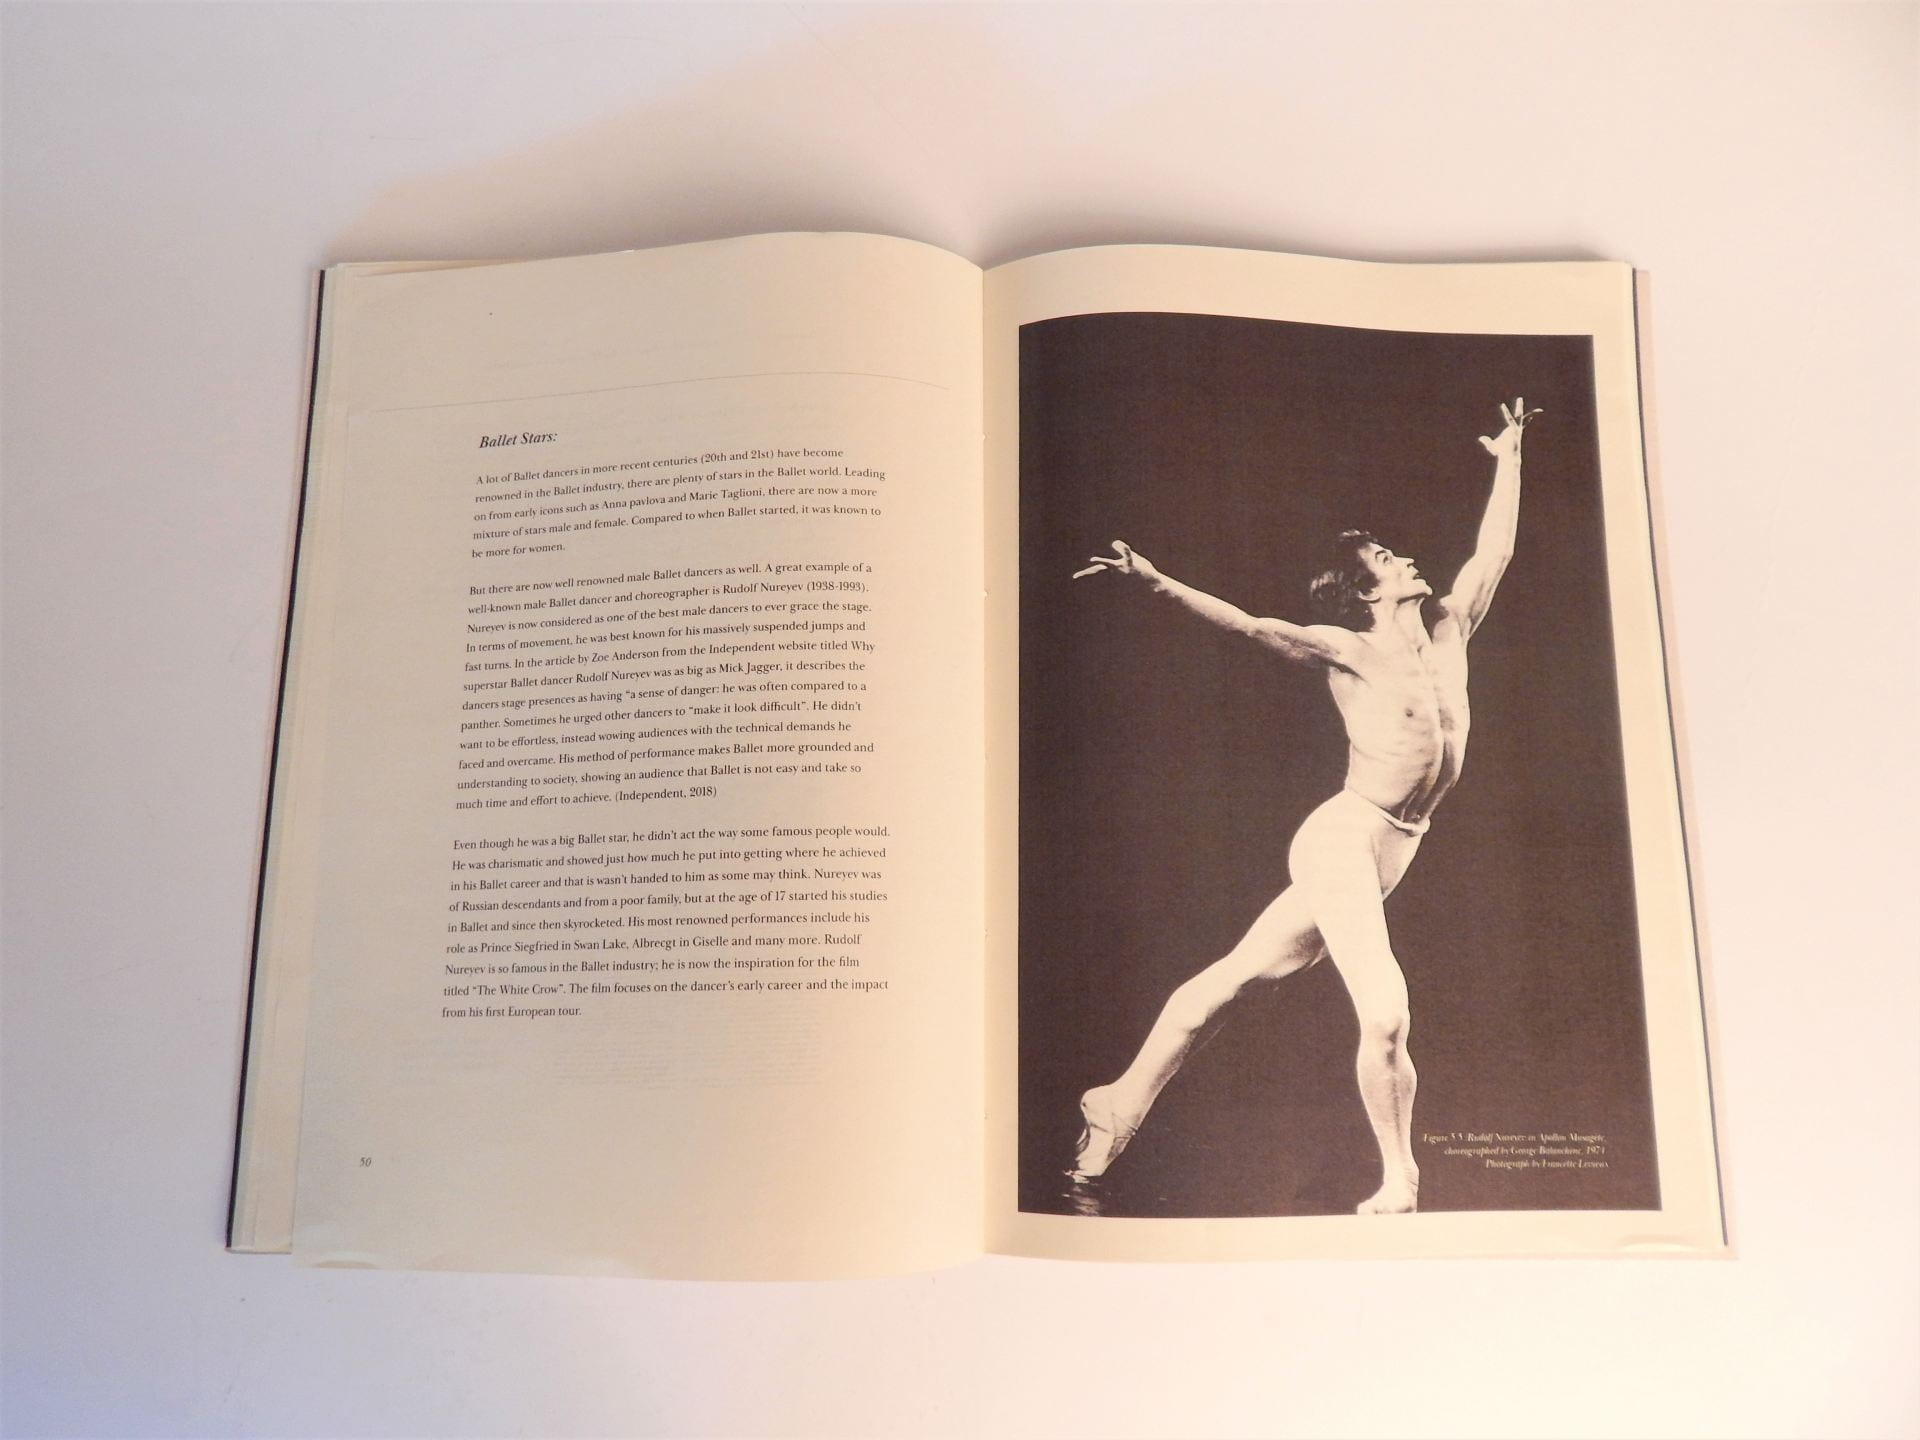 Dissertation paper open at chapter on 'Ballet Stars' with black and white photograph of male ballet dancer.